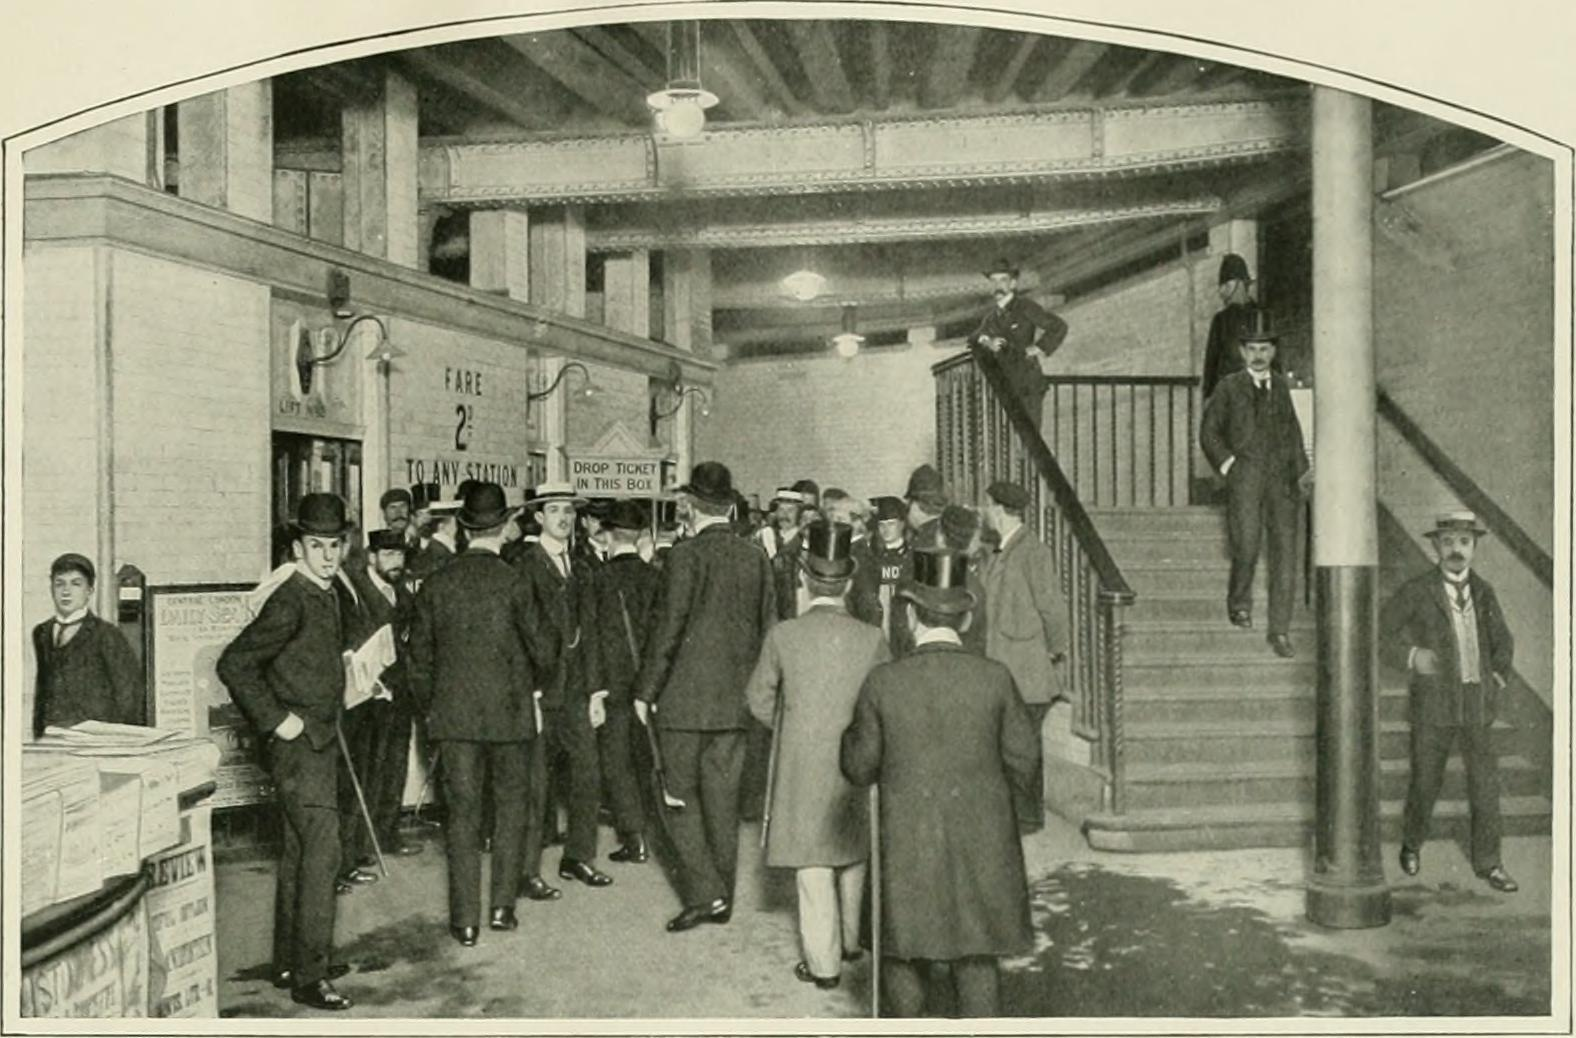 Waiting for the lifts at Bank Underground - Central London Railway 120th anniversary